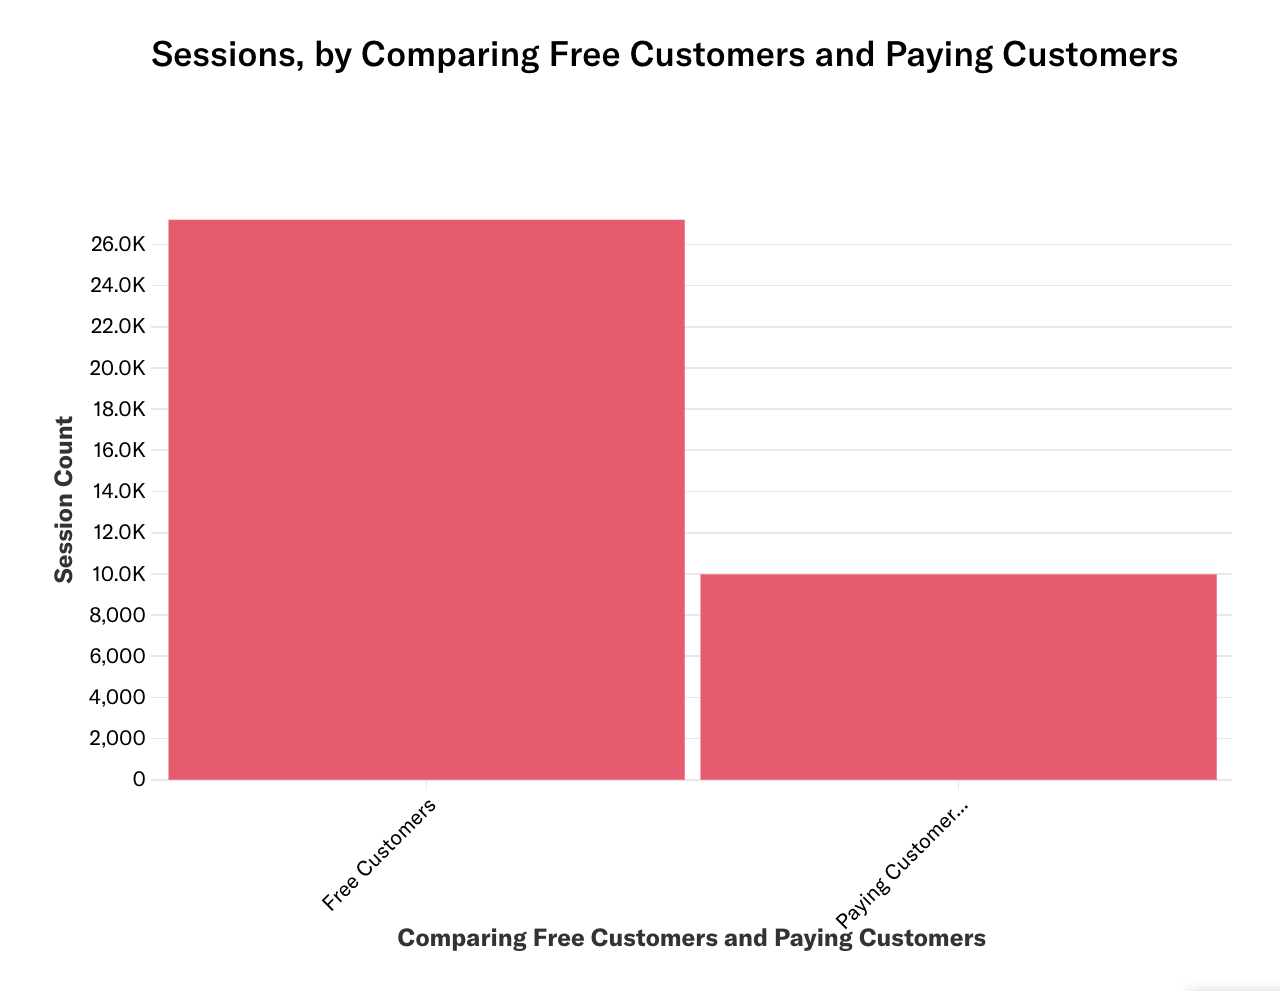 A bar chart of Sessions by comparing free customers and payingcustomers